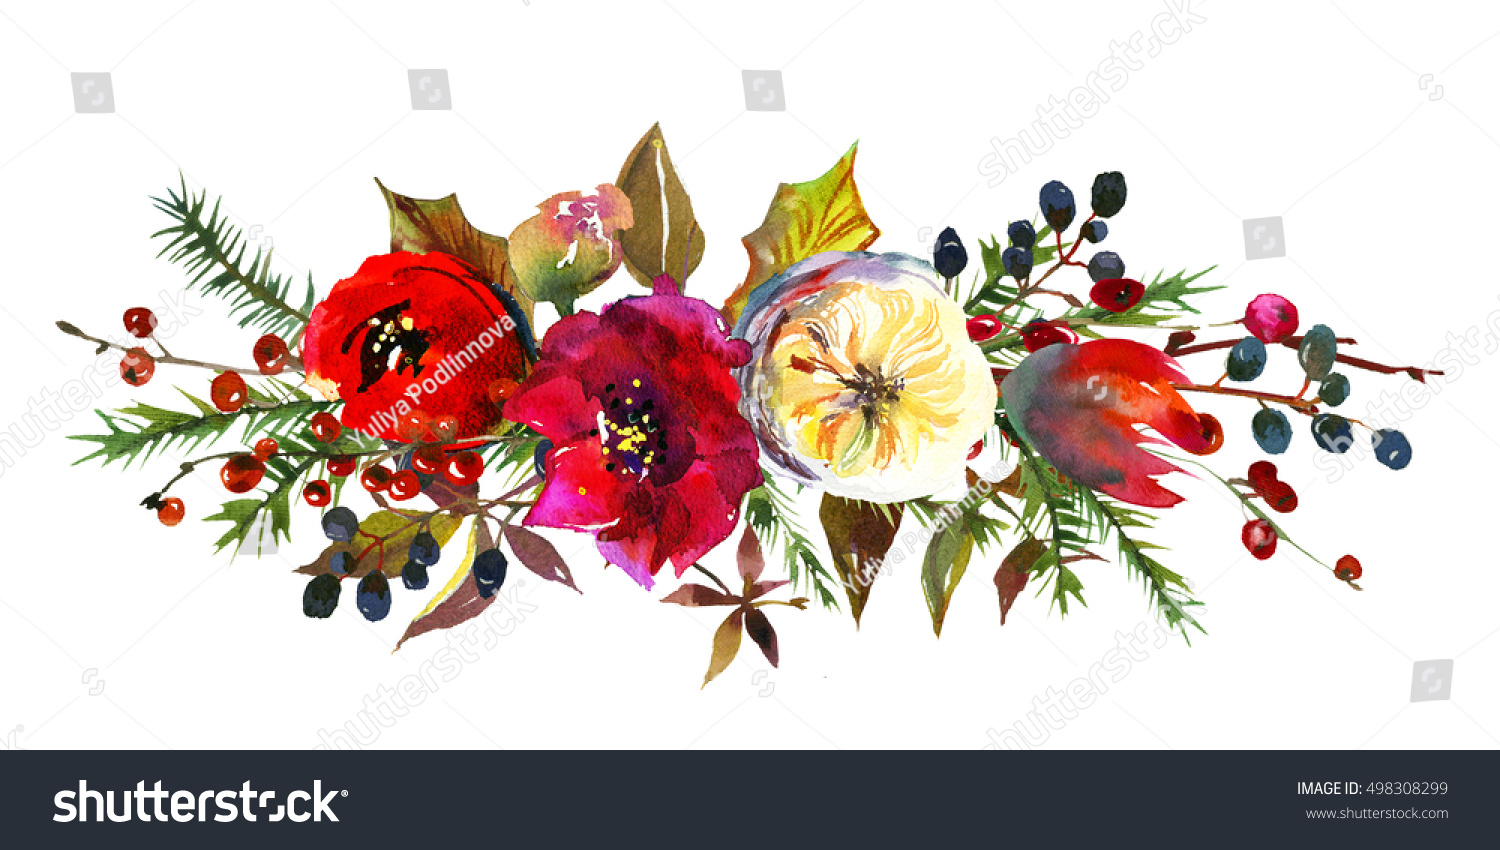 Winter Christmas Floral Bouquet Red Burgundy Stock Illustration ...